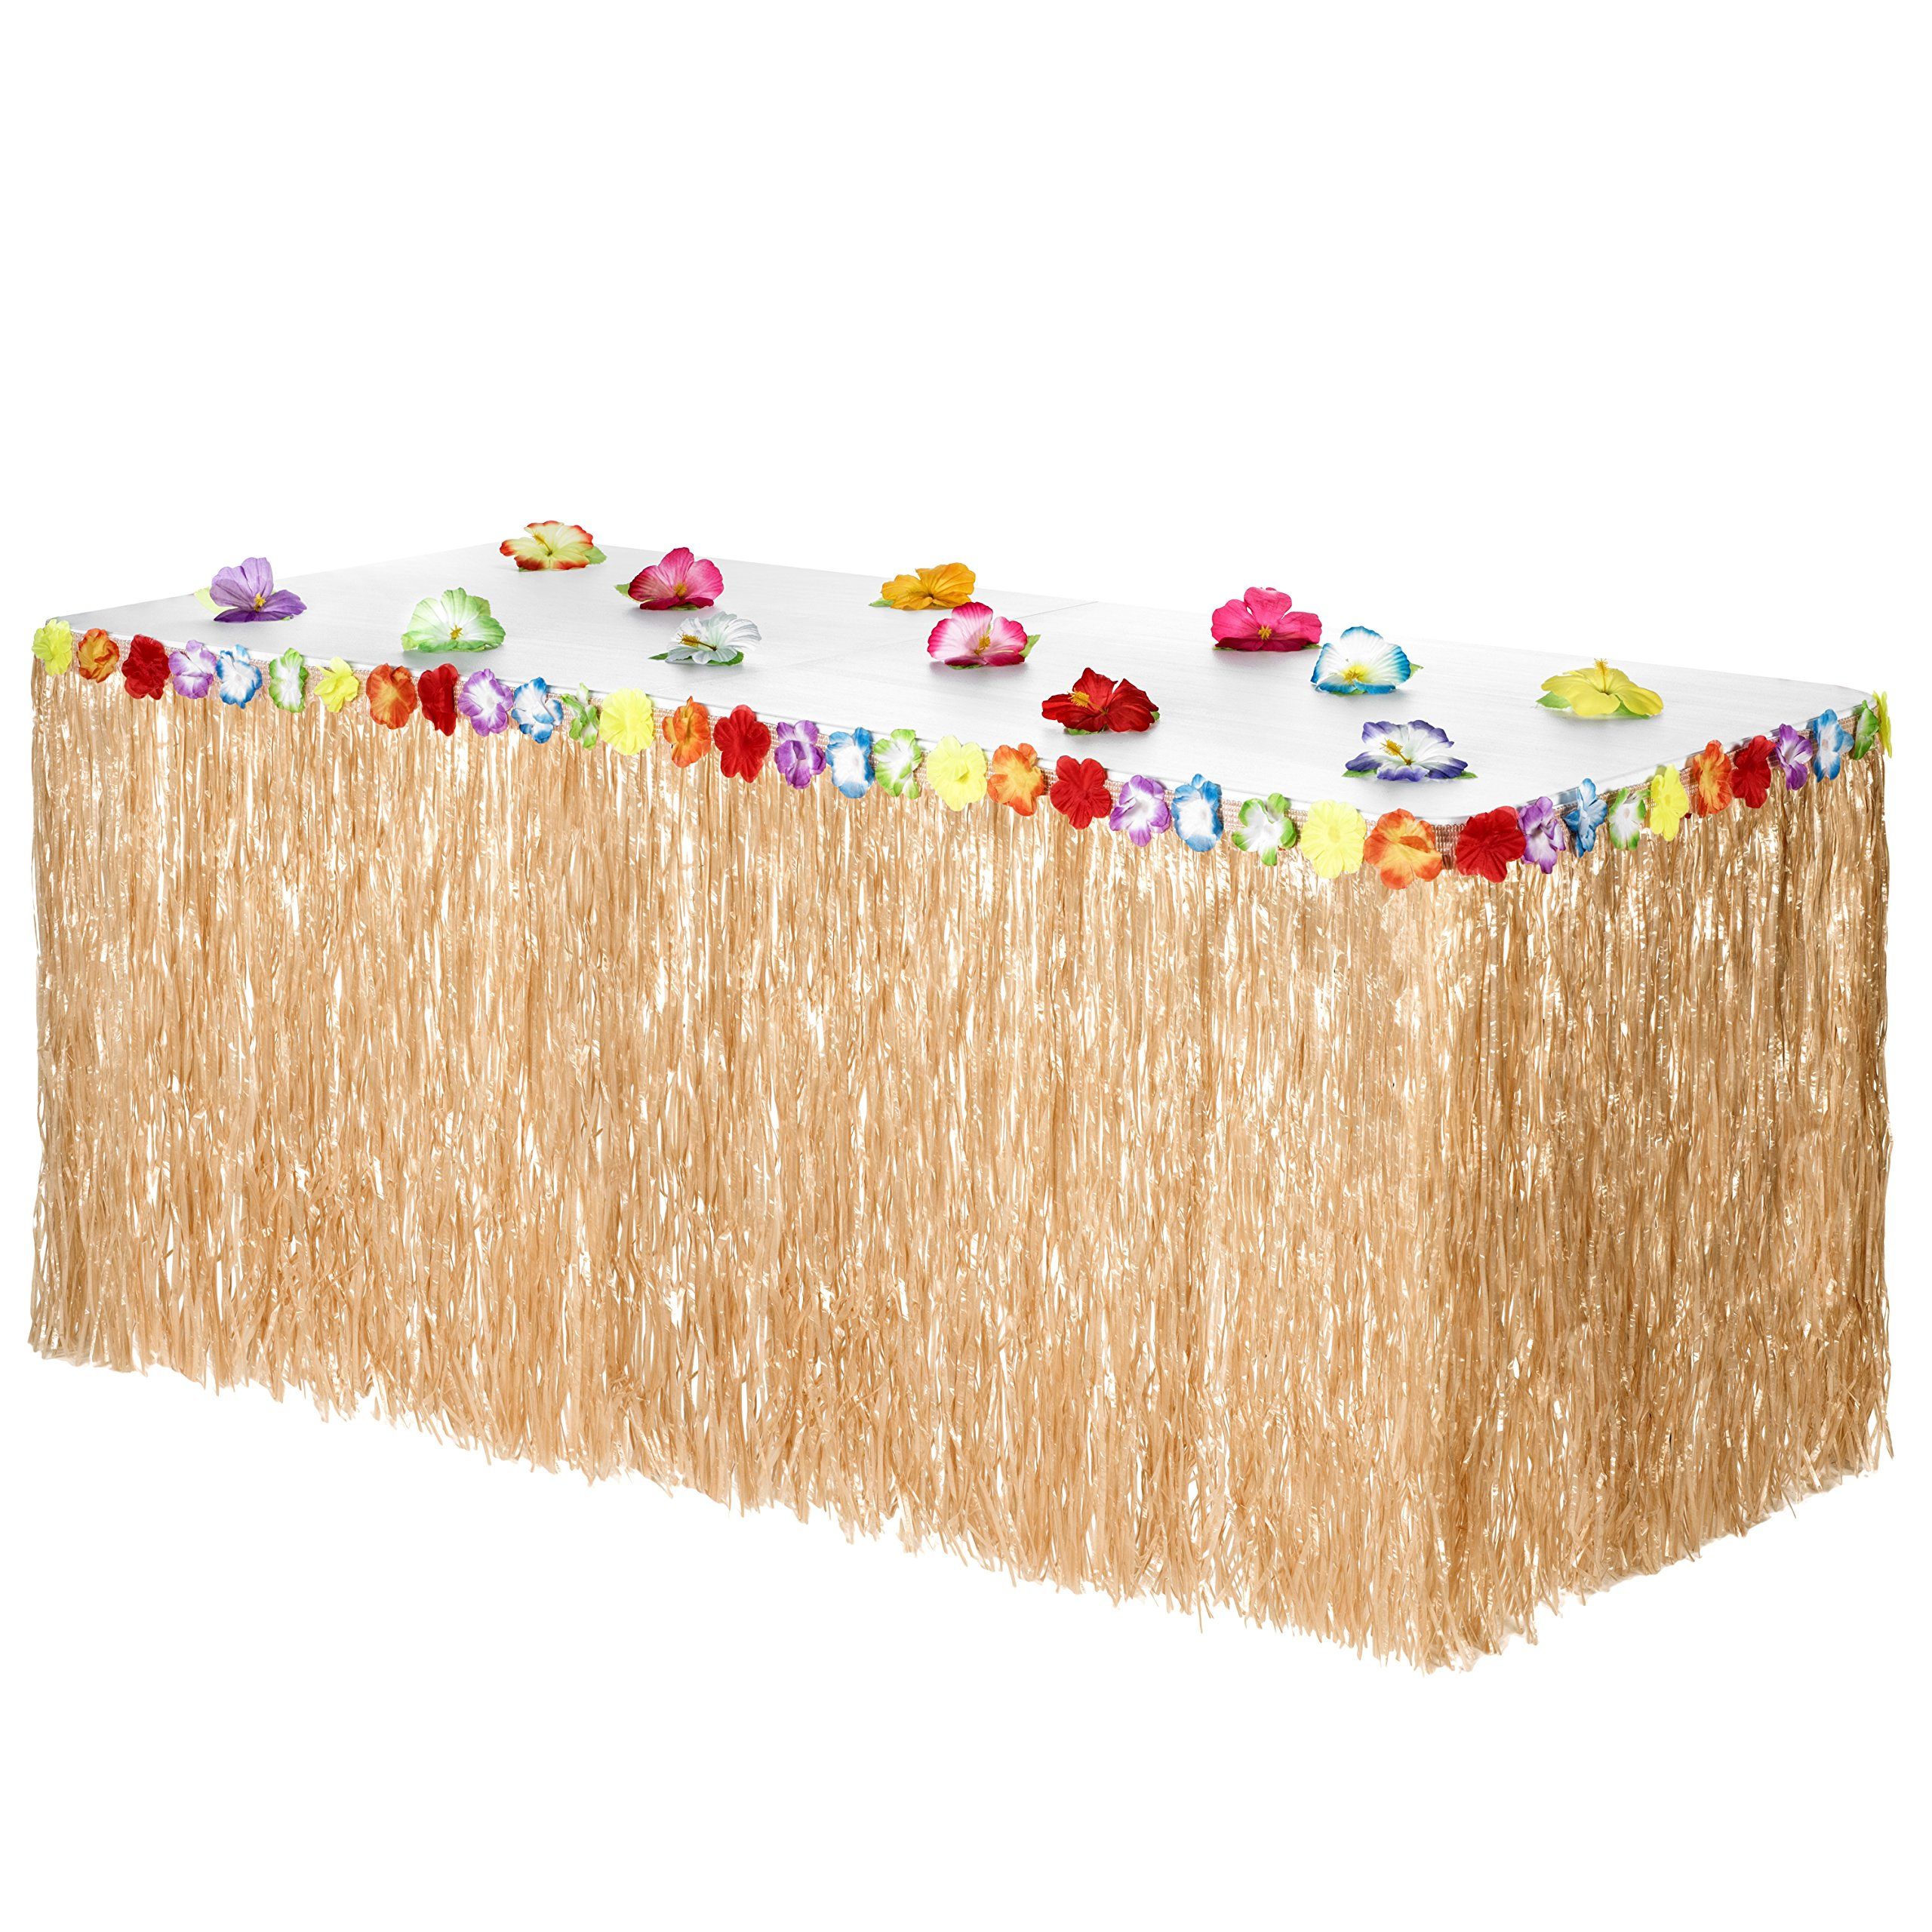 best rated disposable table covers helpful customer reviews artistic accents tablecloth luau grass skirt bonus hibiscus flowers includes adhesive perfect beach tiki tro island